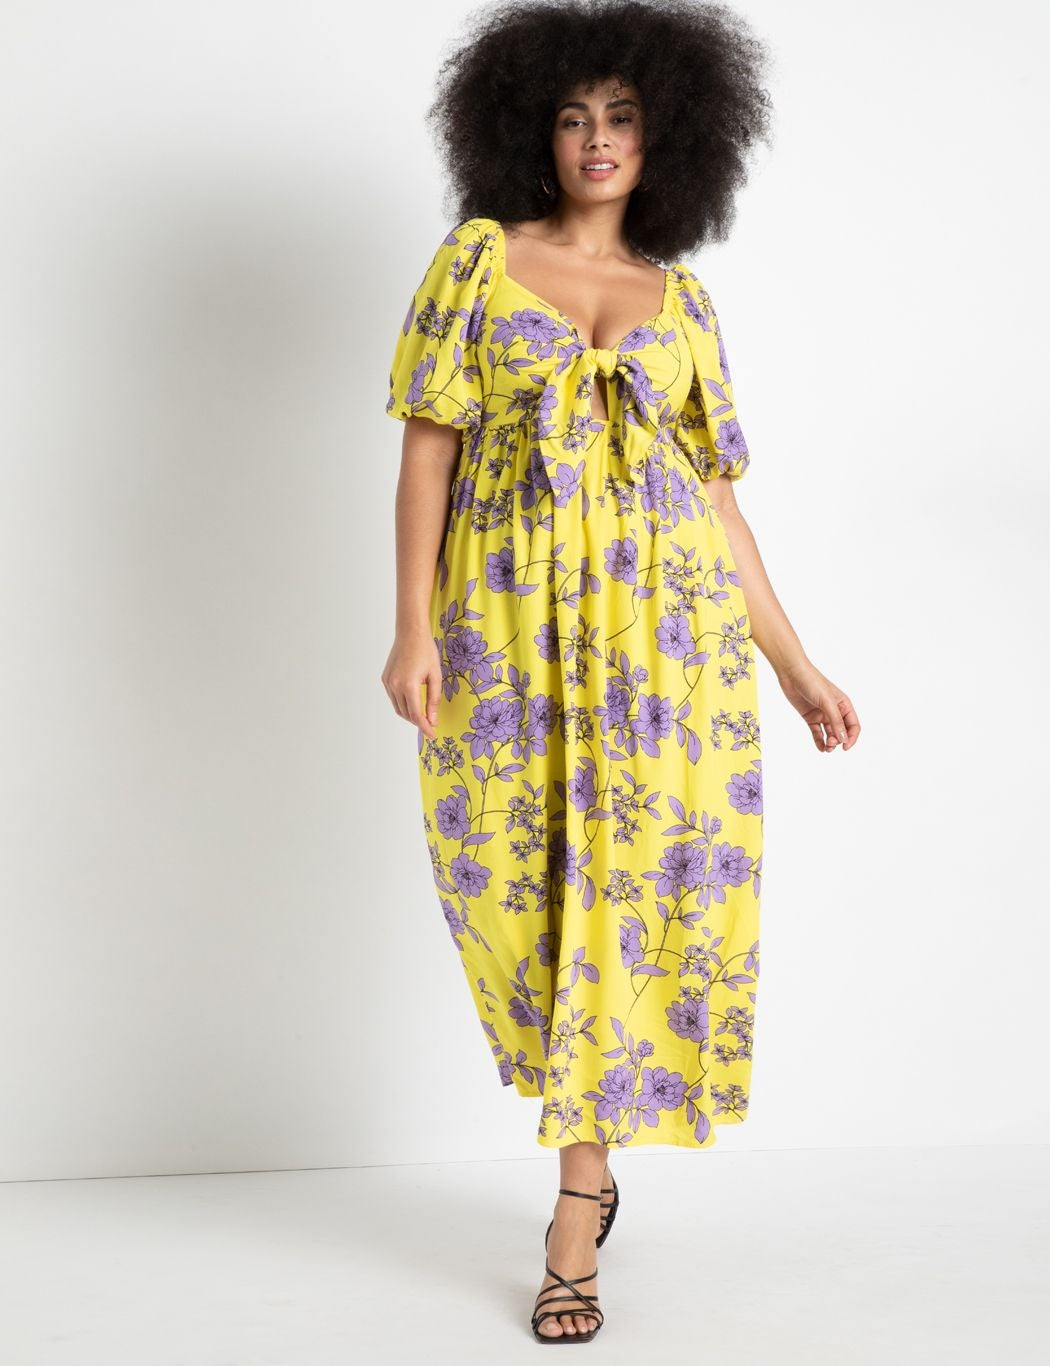 model wearing tie front yellow and purple maxi with short puff sleeves